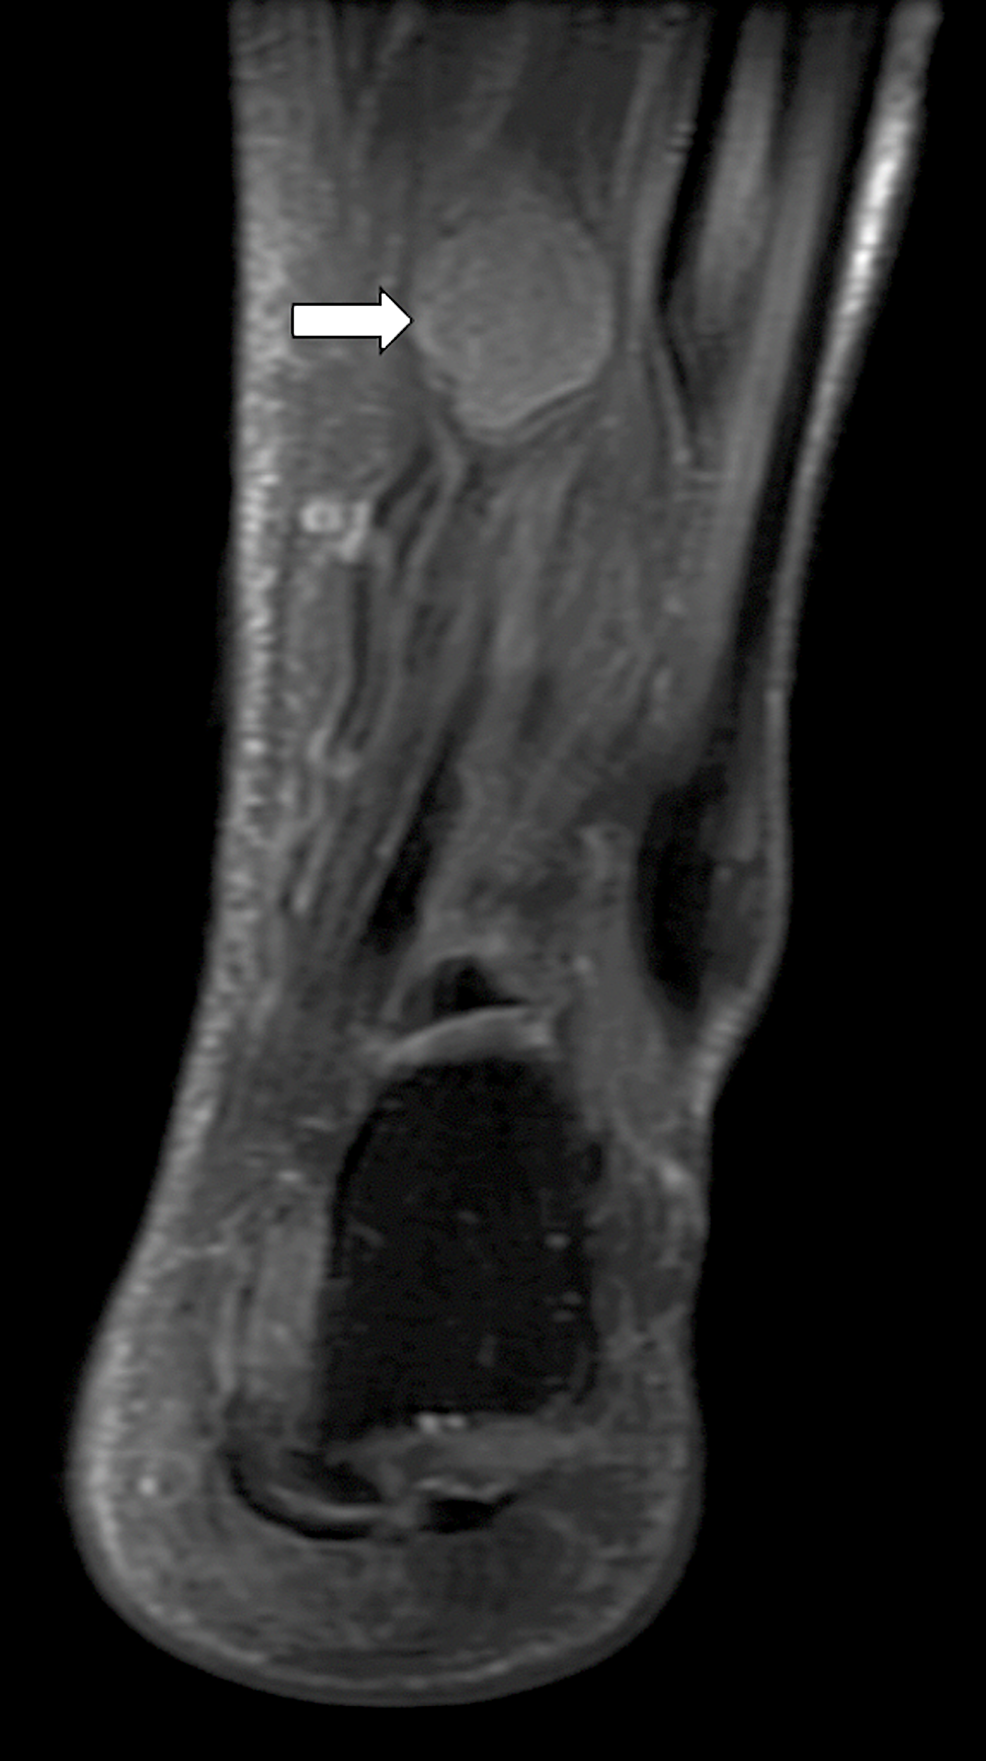 T2-weighted-coronal-MRI-showing-the-mass-arising-from-posterior-tibial-nerve